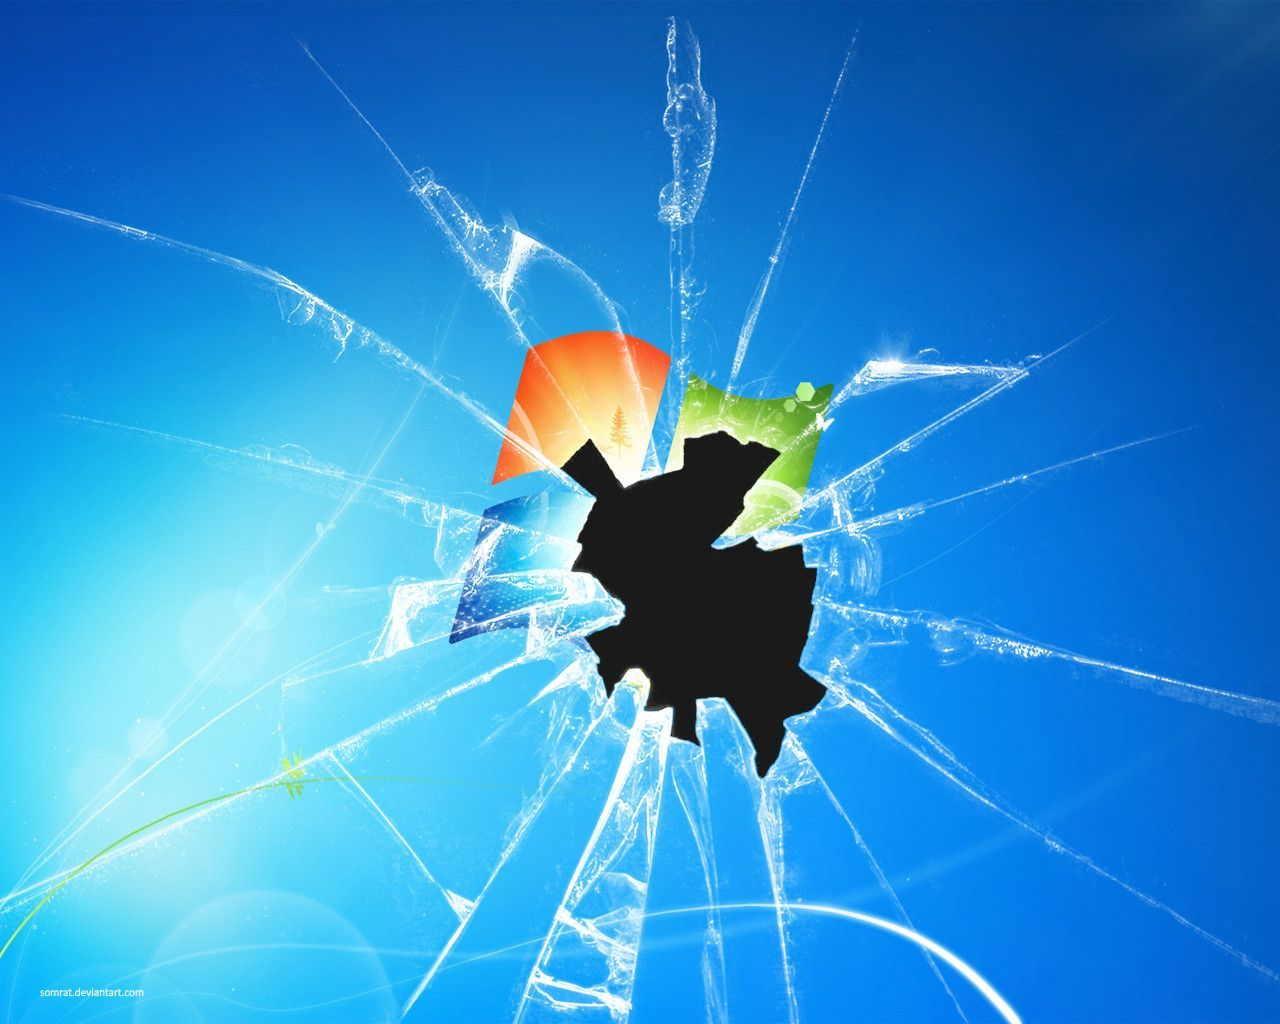 A Lot Of Broken Computers Computer Screen Wallpaper Broken Screen Wallpaper Screen Wallpaper Hd